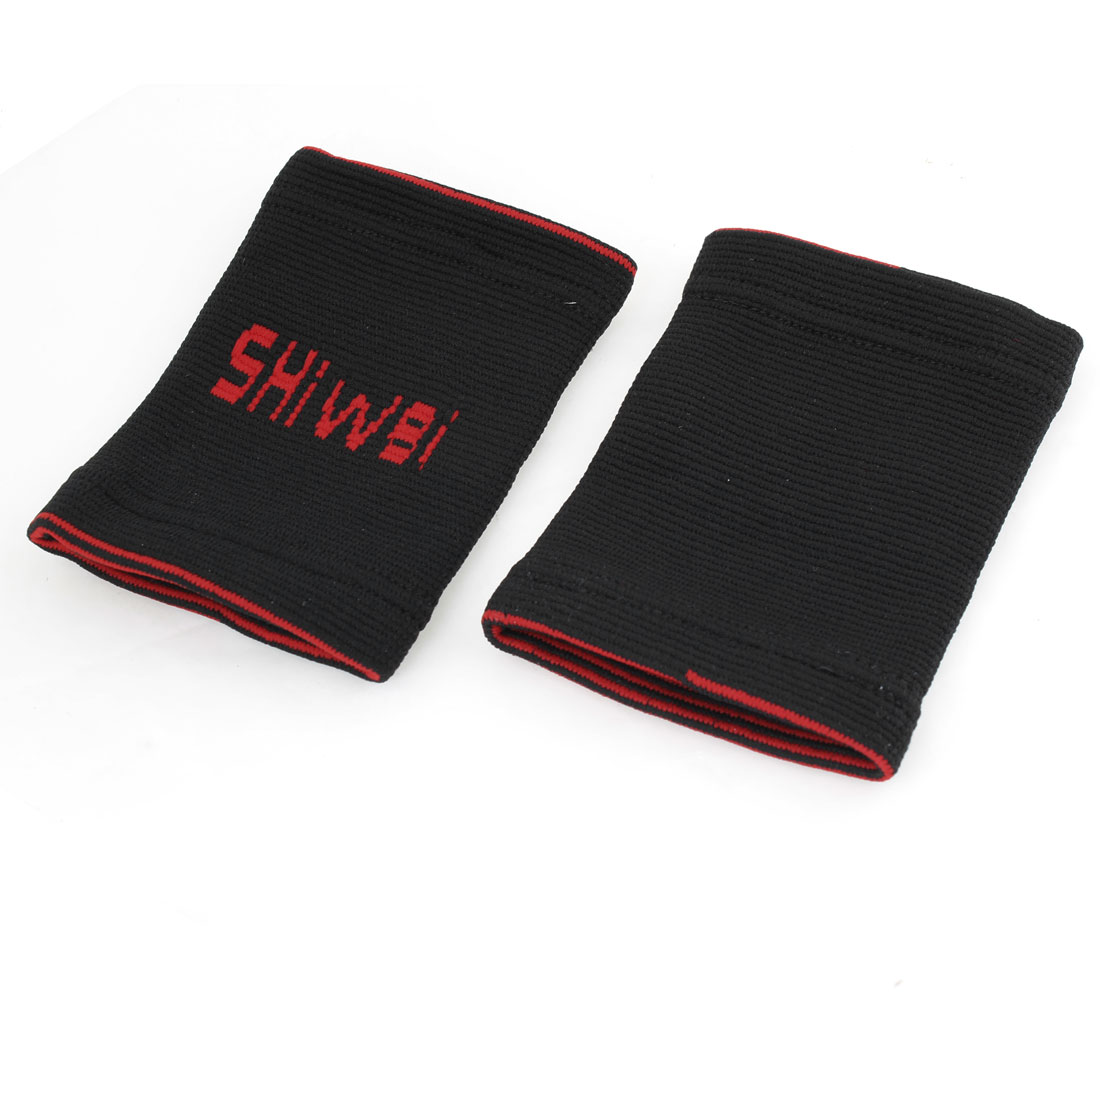 Outdoor Sports Pair Red Black Pullover Design Wrist Support Guard